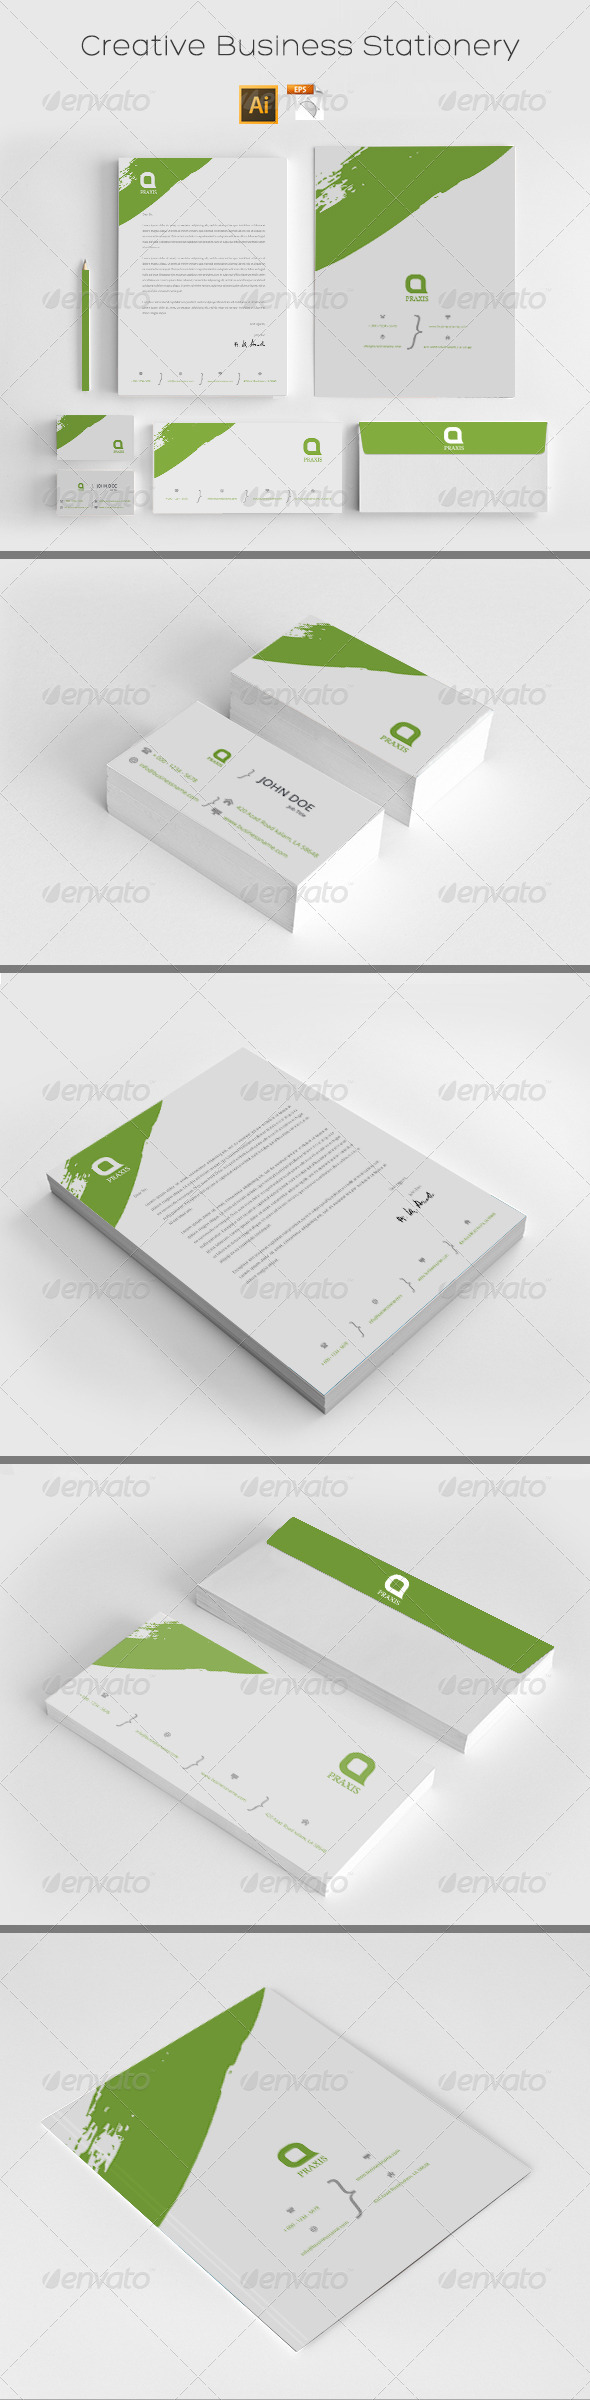 GraphicRiver Creative Business Stationery 8611664